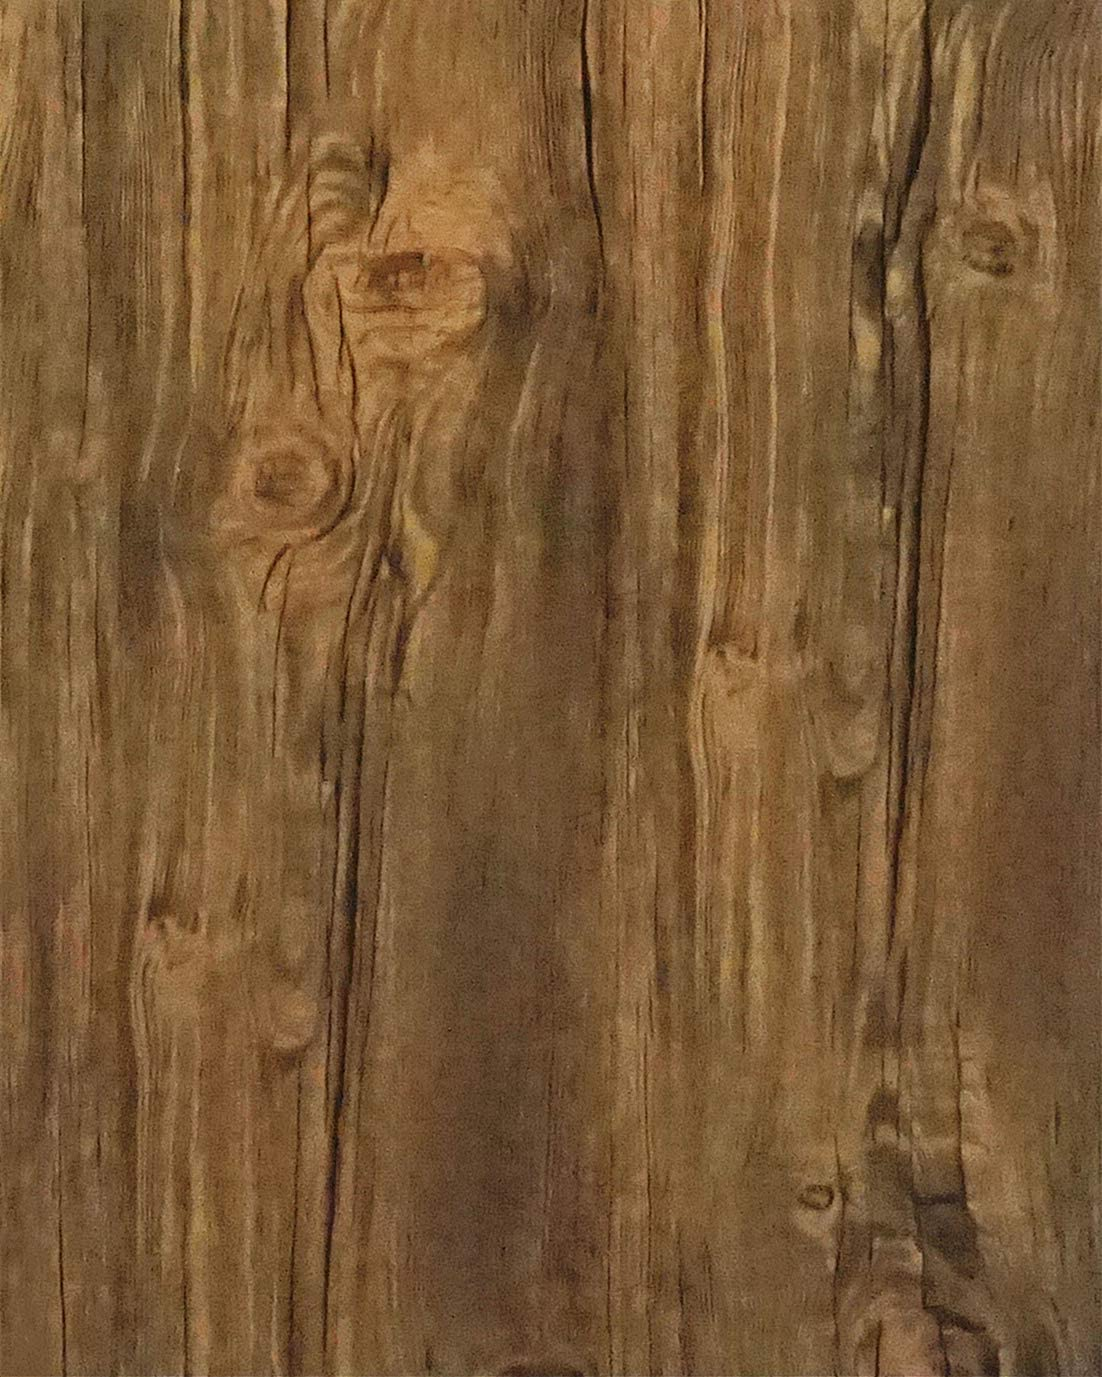 Brown Wood Wallpaper Brown Self Adhesive Wallpaper Stick and Peel Vintage Distressed Rustic Weathered Wood Grain Wallpaper Peel and Stick Wallpaper Removable Roll Vinyl Wall Covering 17.7x118in